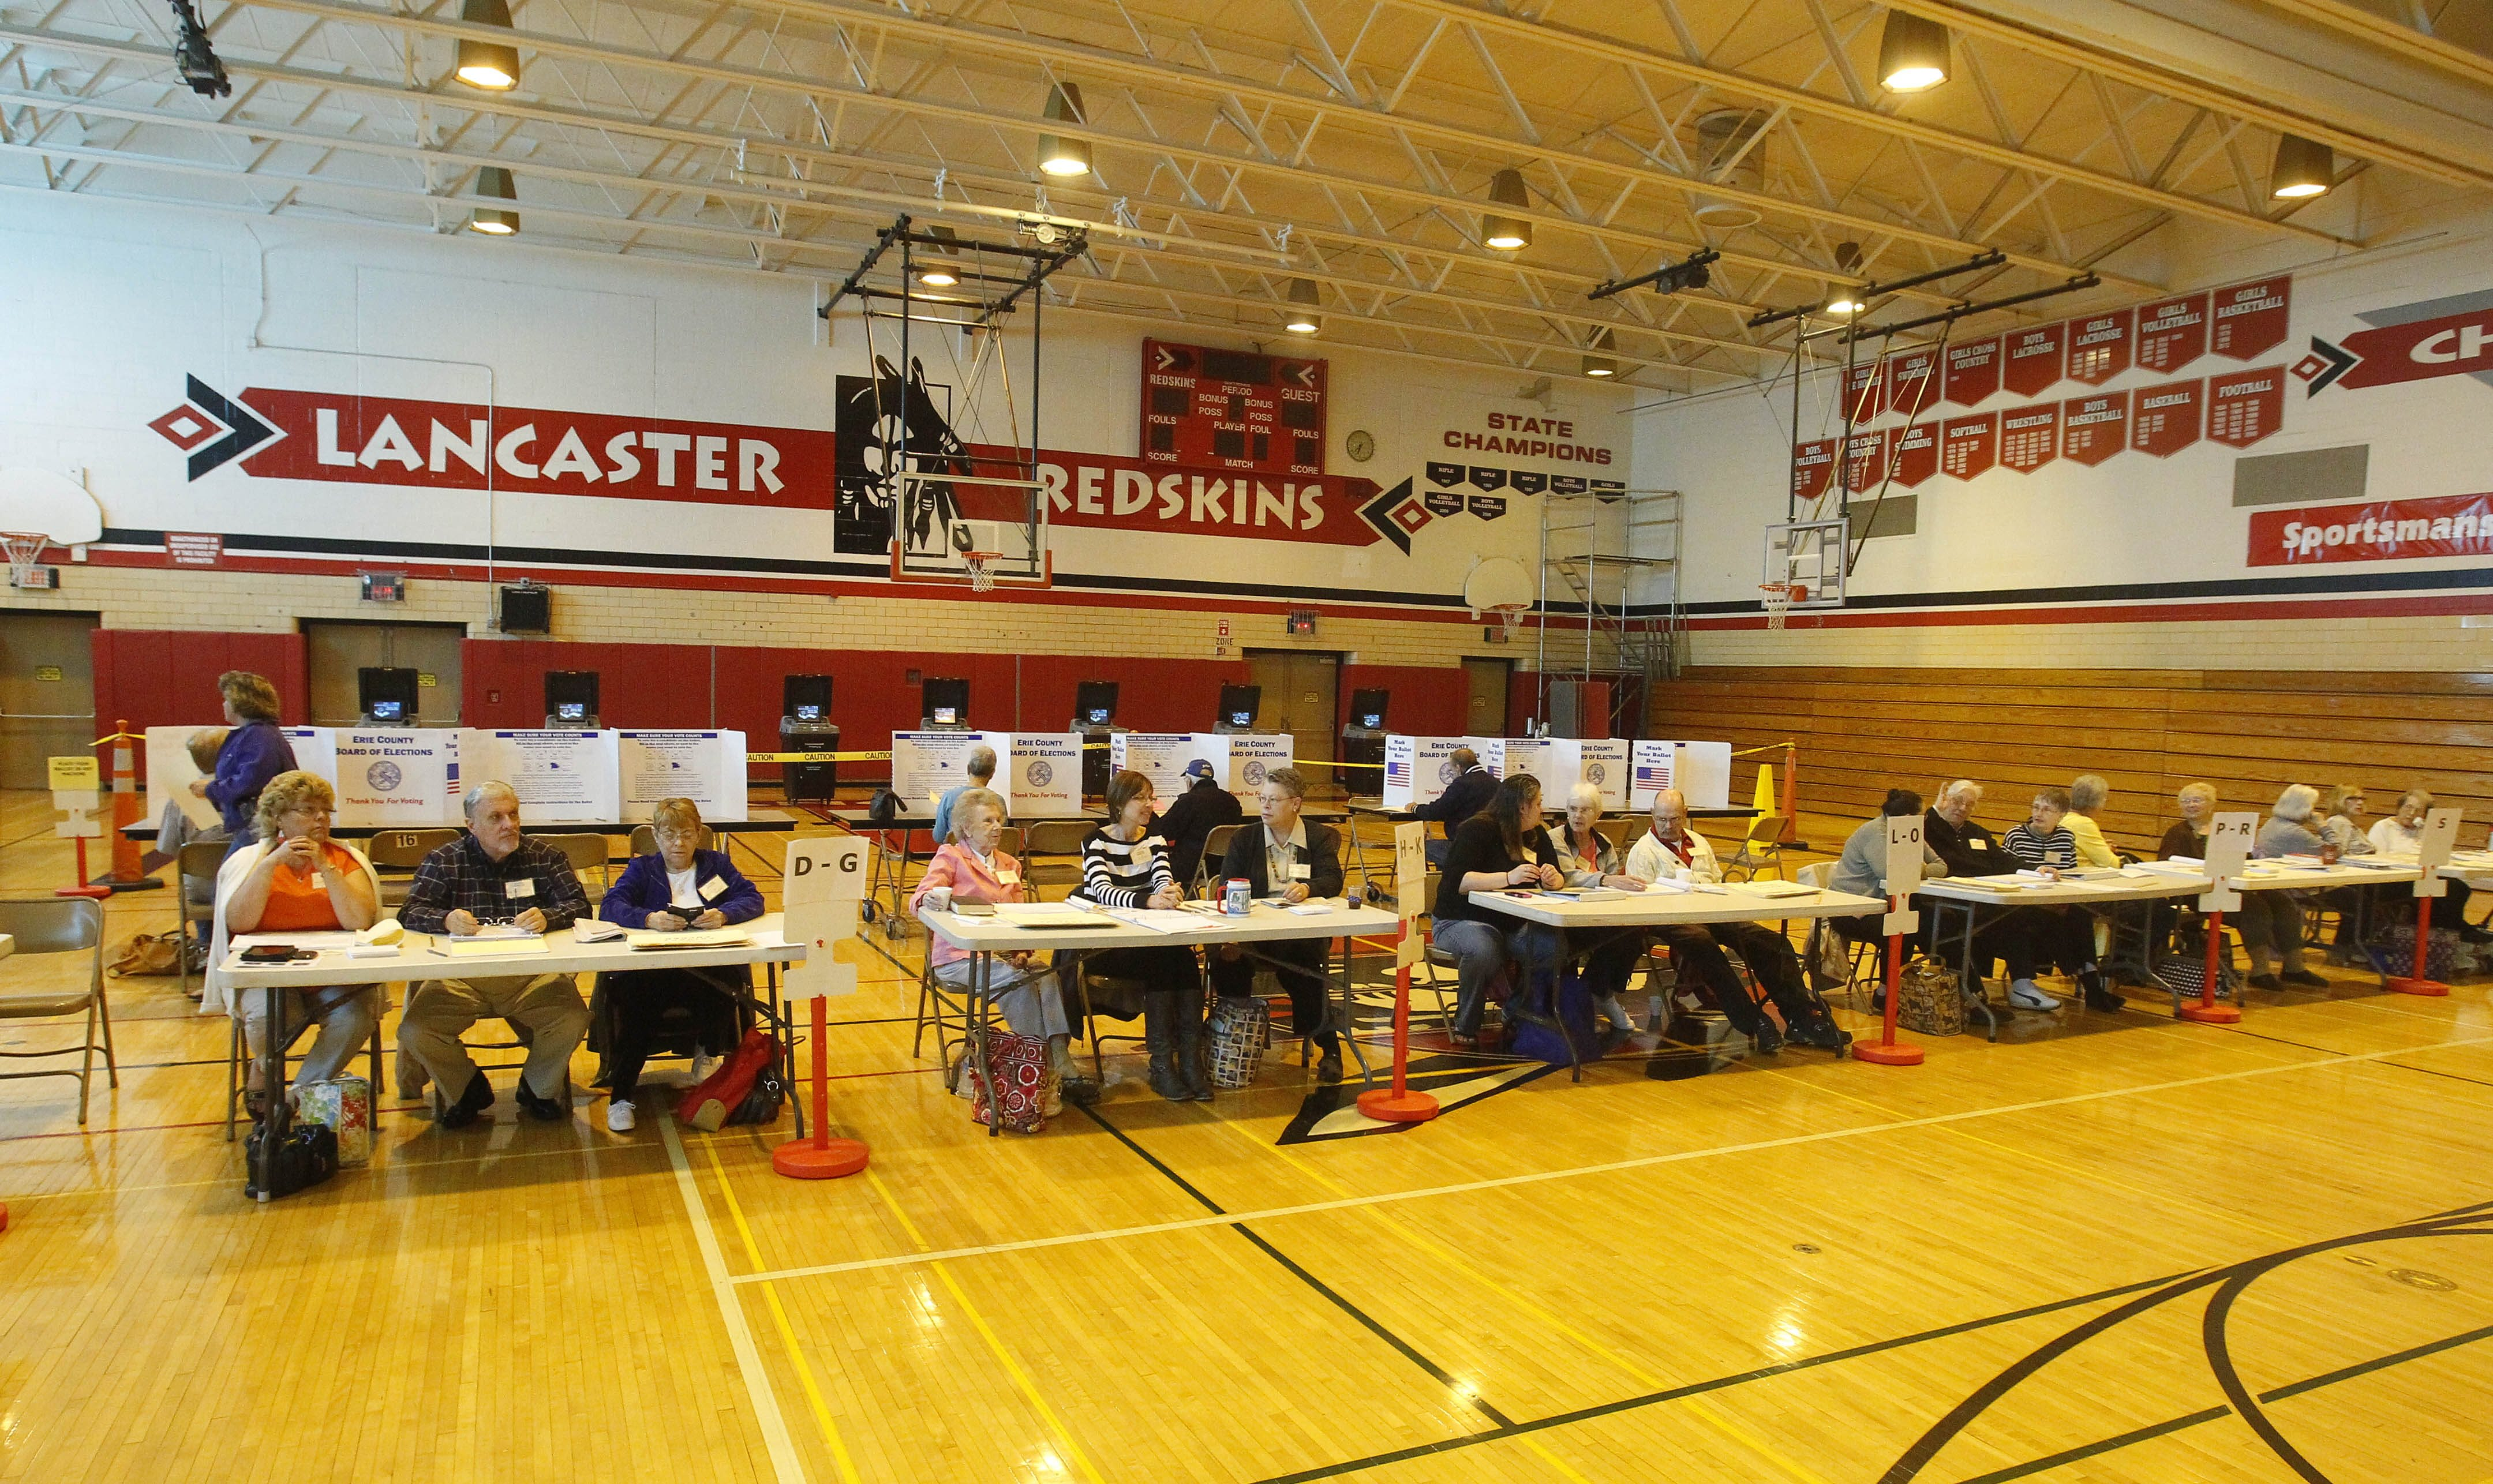 Election Inspectors at  at  Lancaster high school 1 Forton Drive in Lancaster, N.Y., for the School Budget vote on  Tuesday, May 20, 2014.  (John Hickey/Buffalo News)